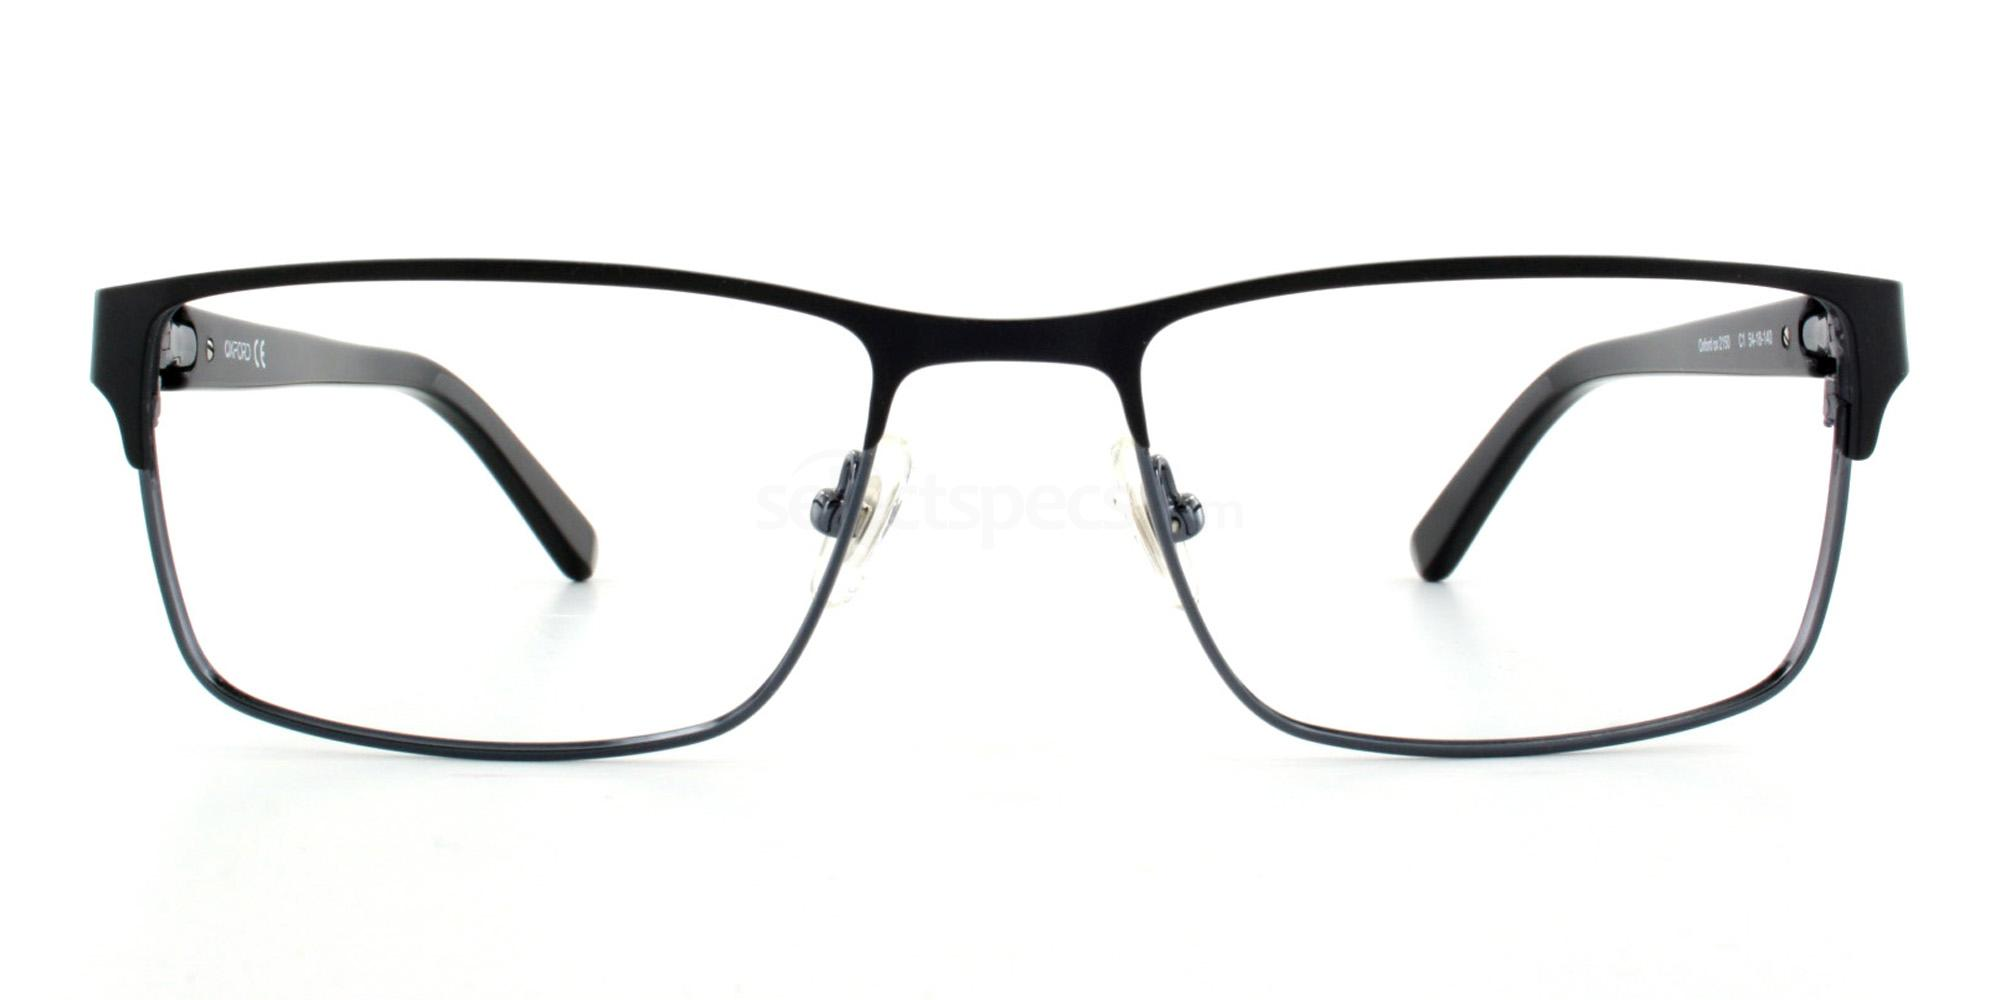 C1 OXF 2150 Glasses, Oxford